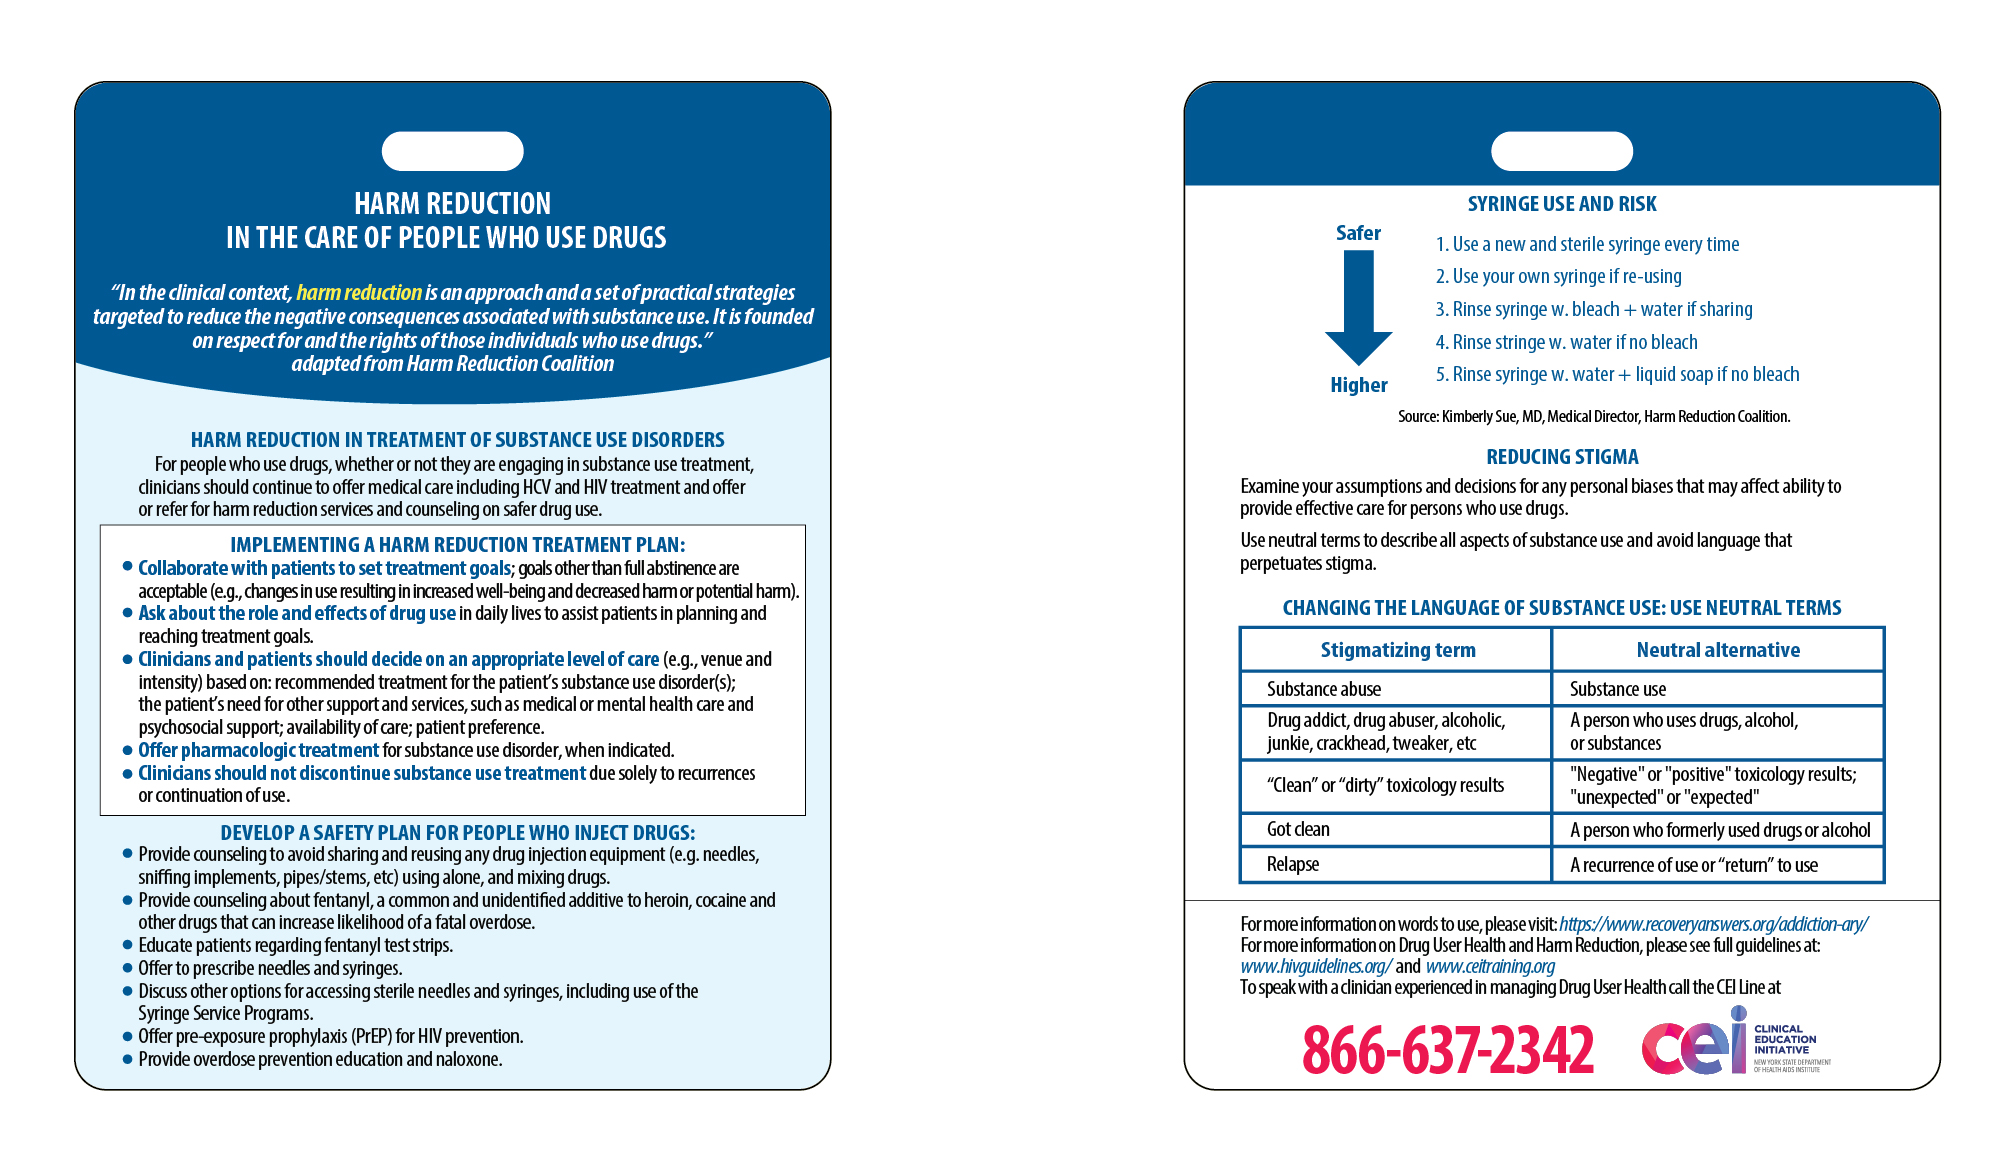 *Photo shown is front and back of the Harm Reduction Clinical Card